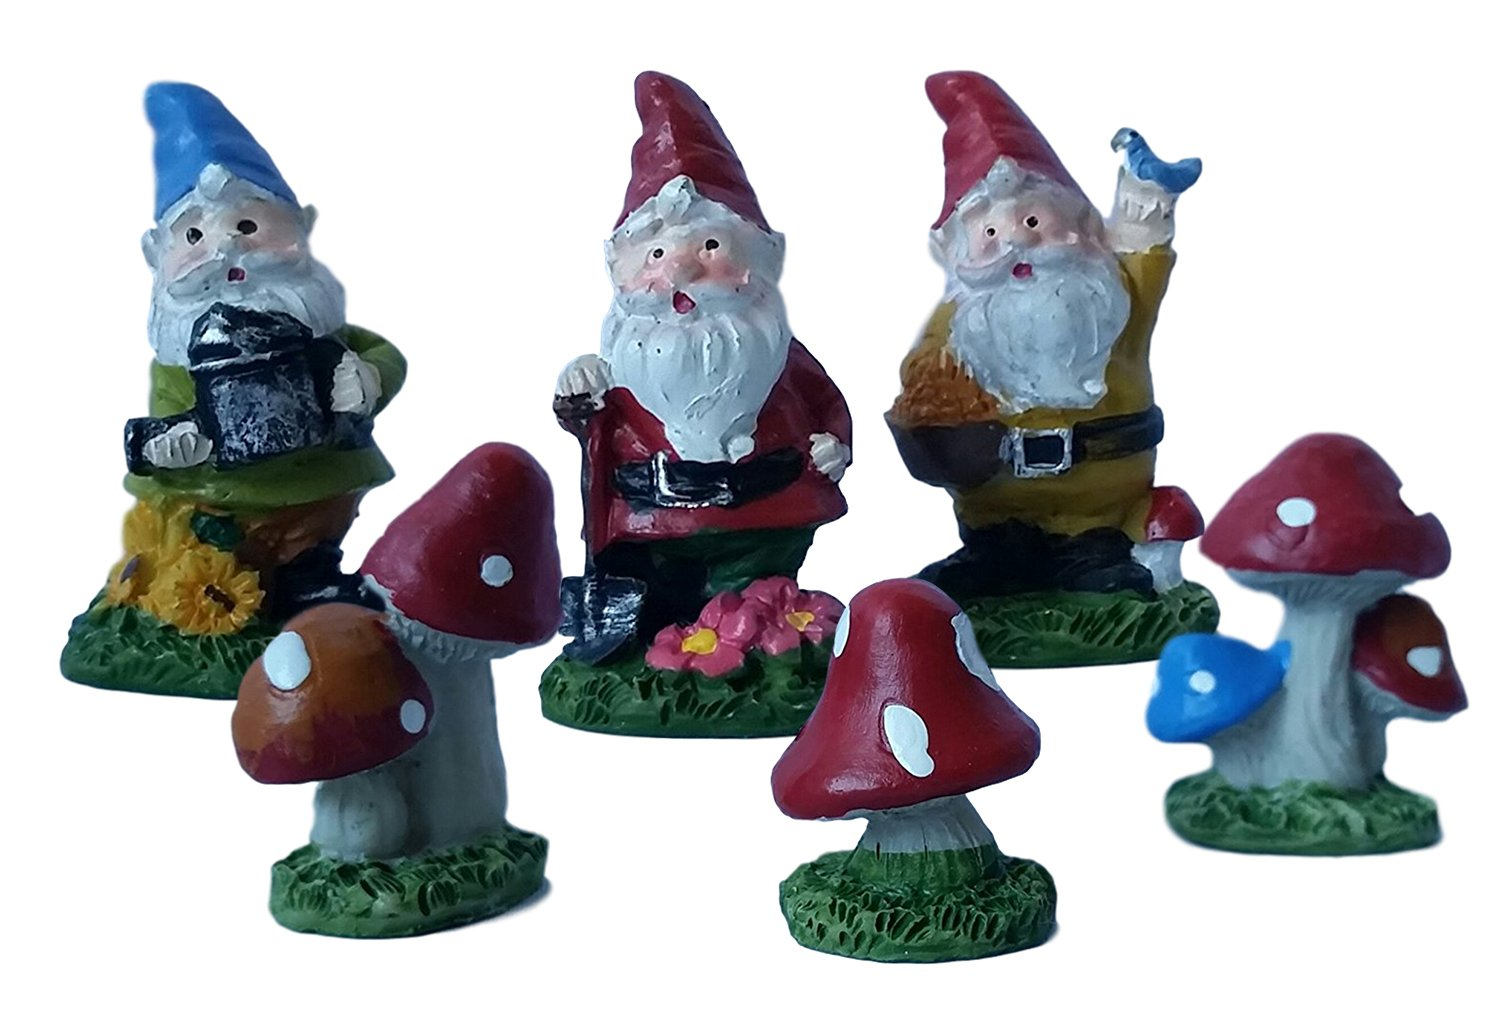 Get Quotations · 3 Gnomes 3 Toadstools Fairy Garden Figurines   2 Packs Of  3 Figures: 3 Gnomes